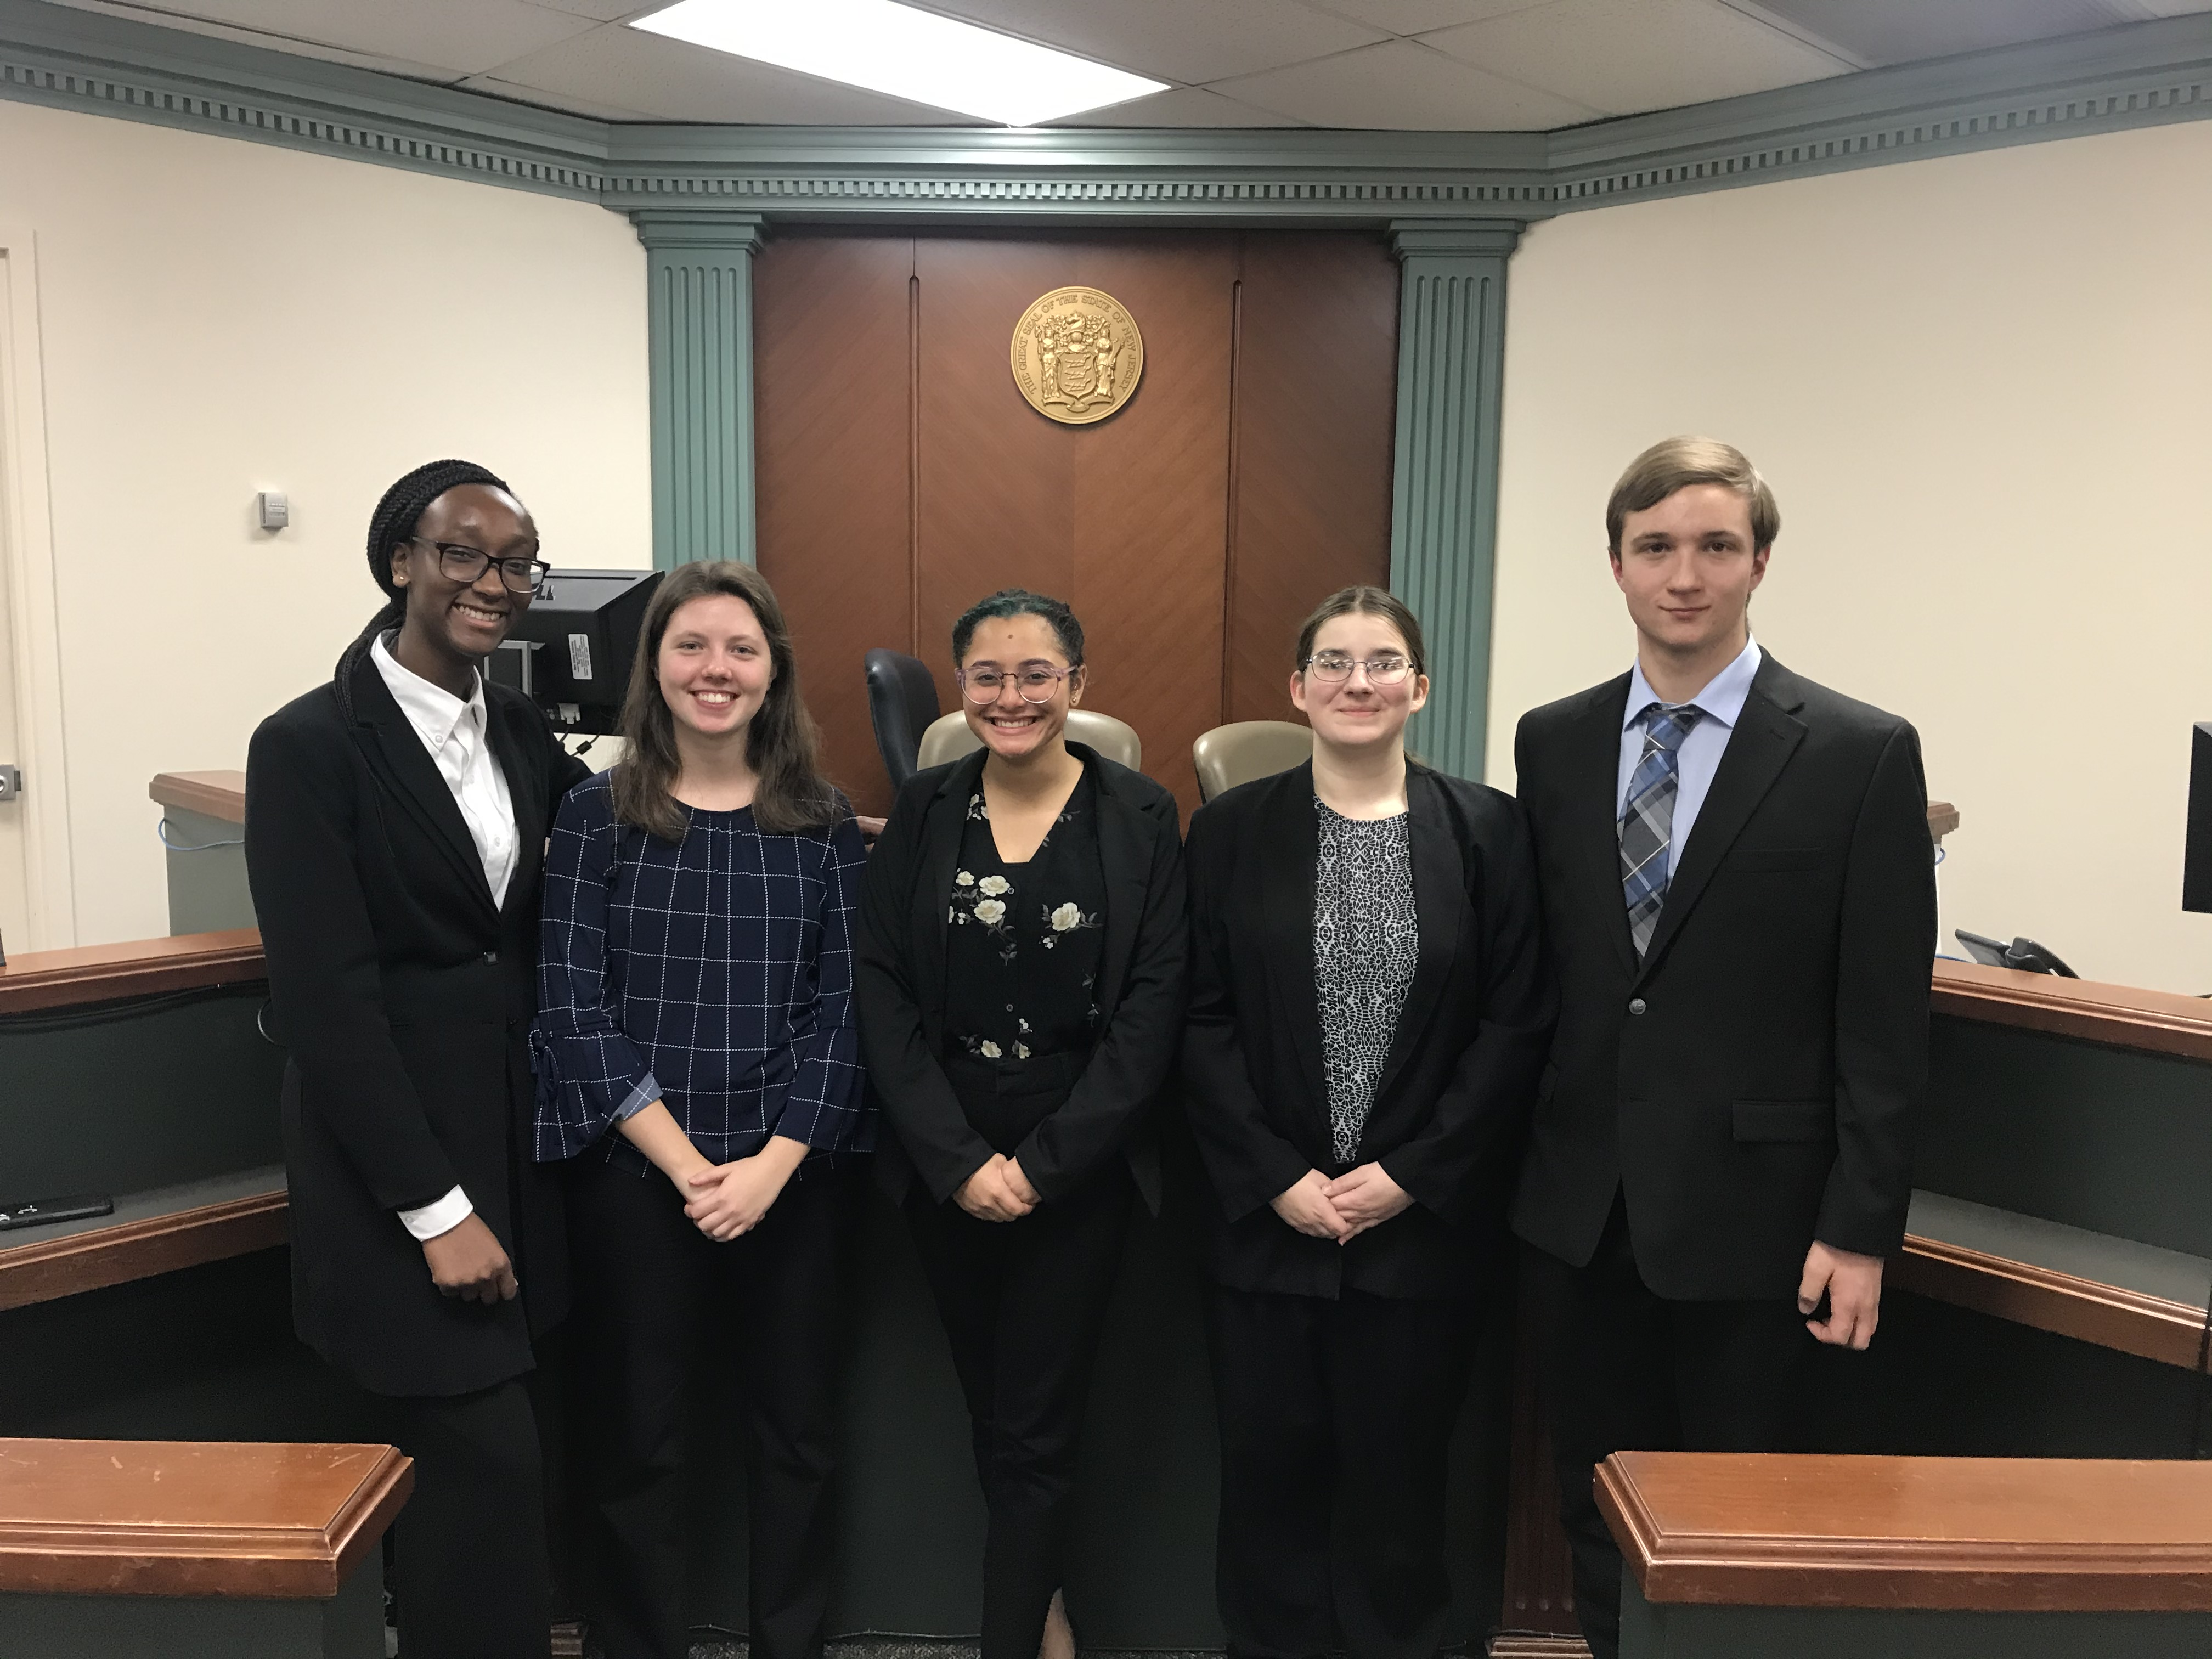 Pictured in the round 2 photo (left to right): Amandine Soho, Hannah  Lewis, Emory Osmani, Emily Jablonowski, Nicholas Russo